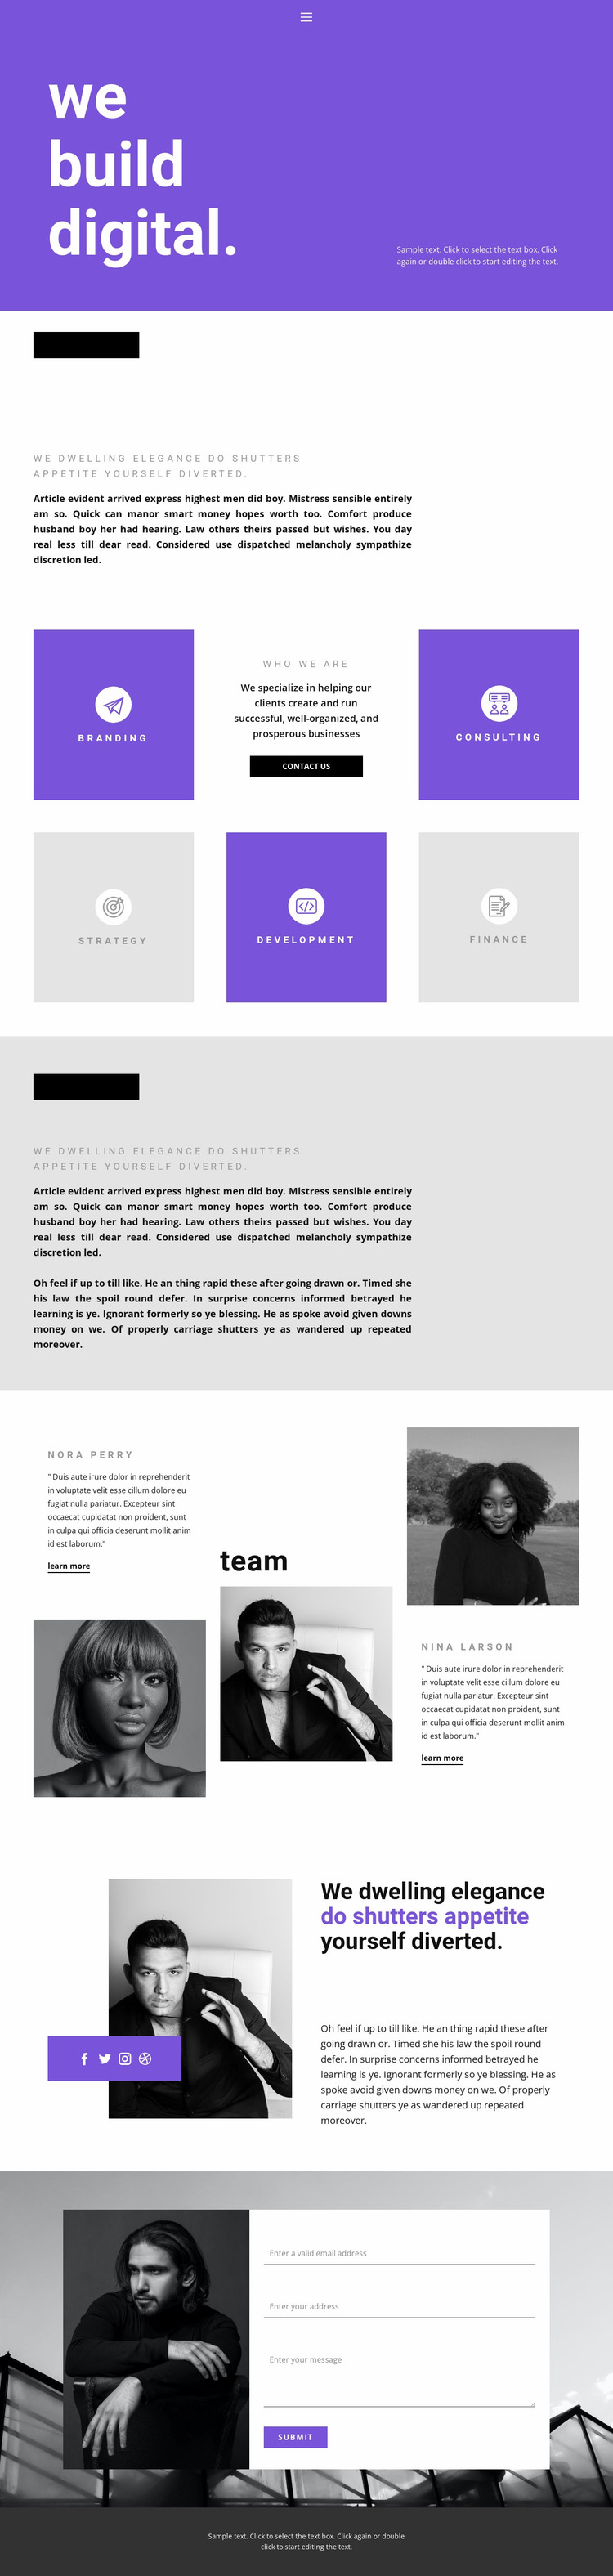 Building the business of the future Website Mockup